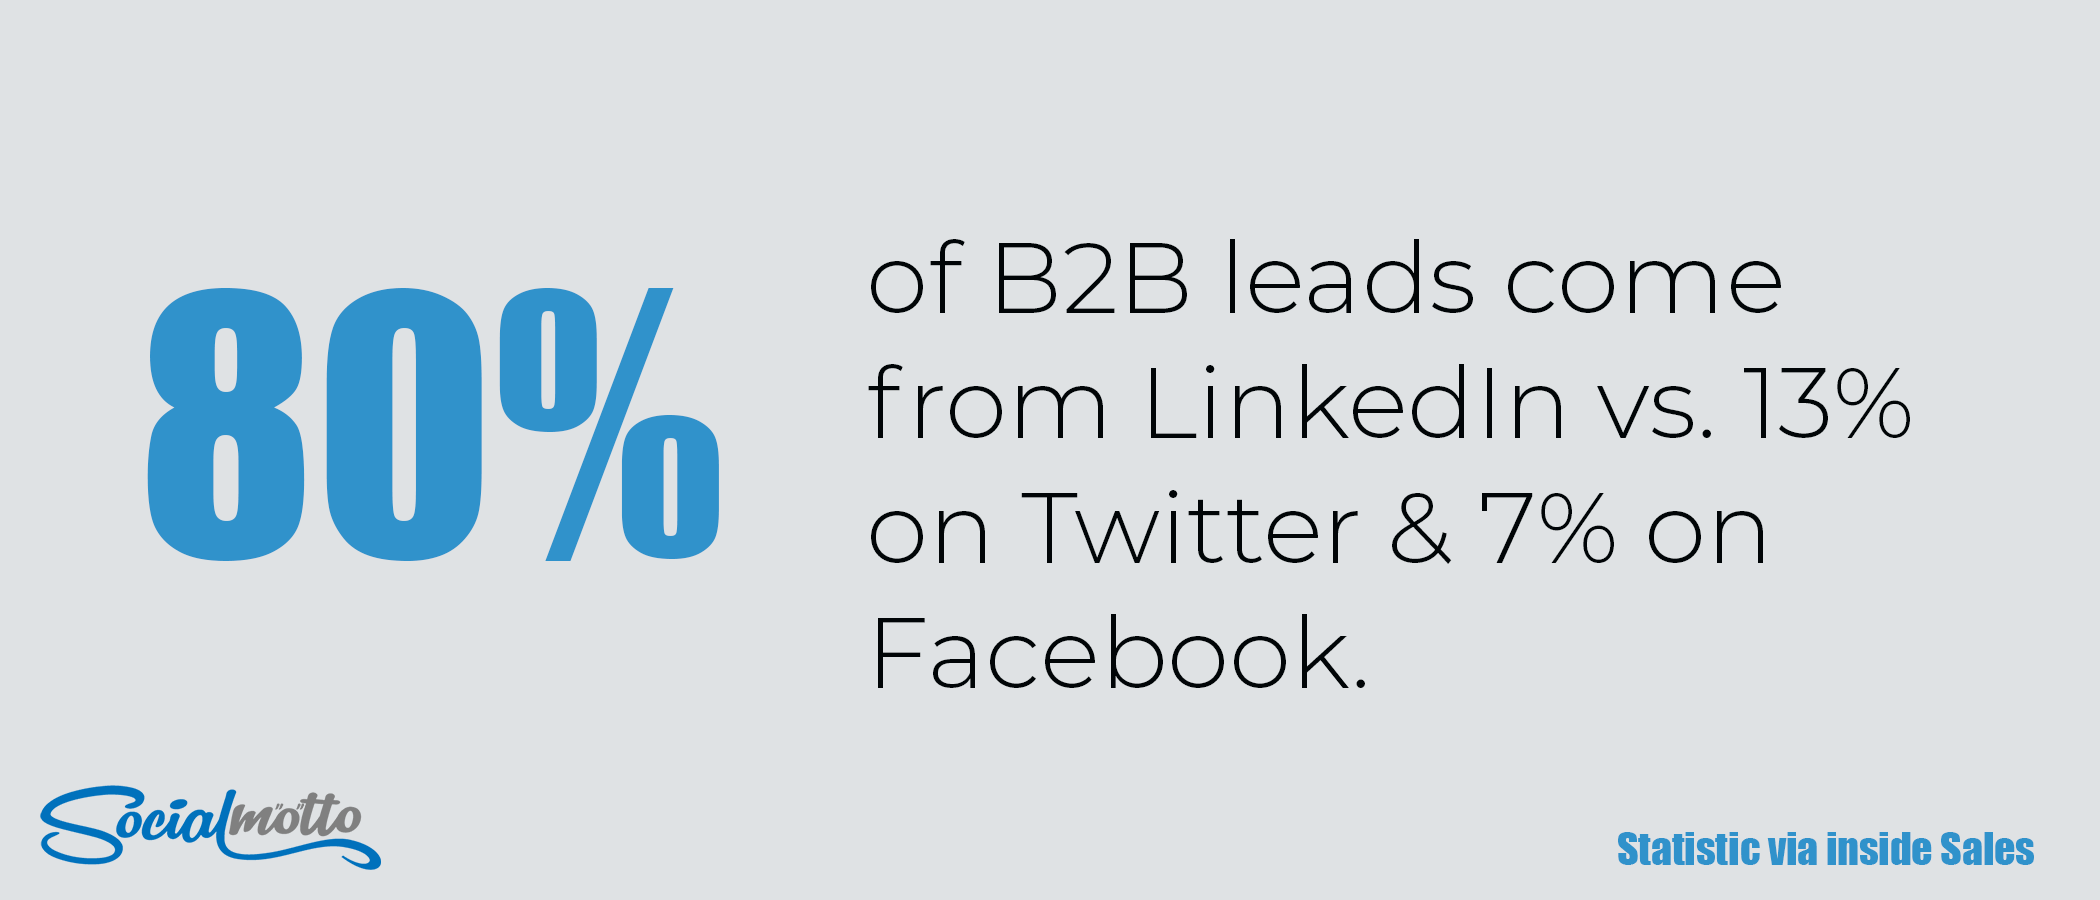 Are You Using LinkedIn's Most Powerful Prospecting Tools?